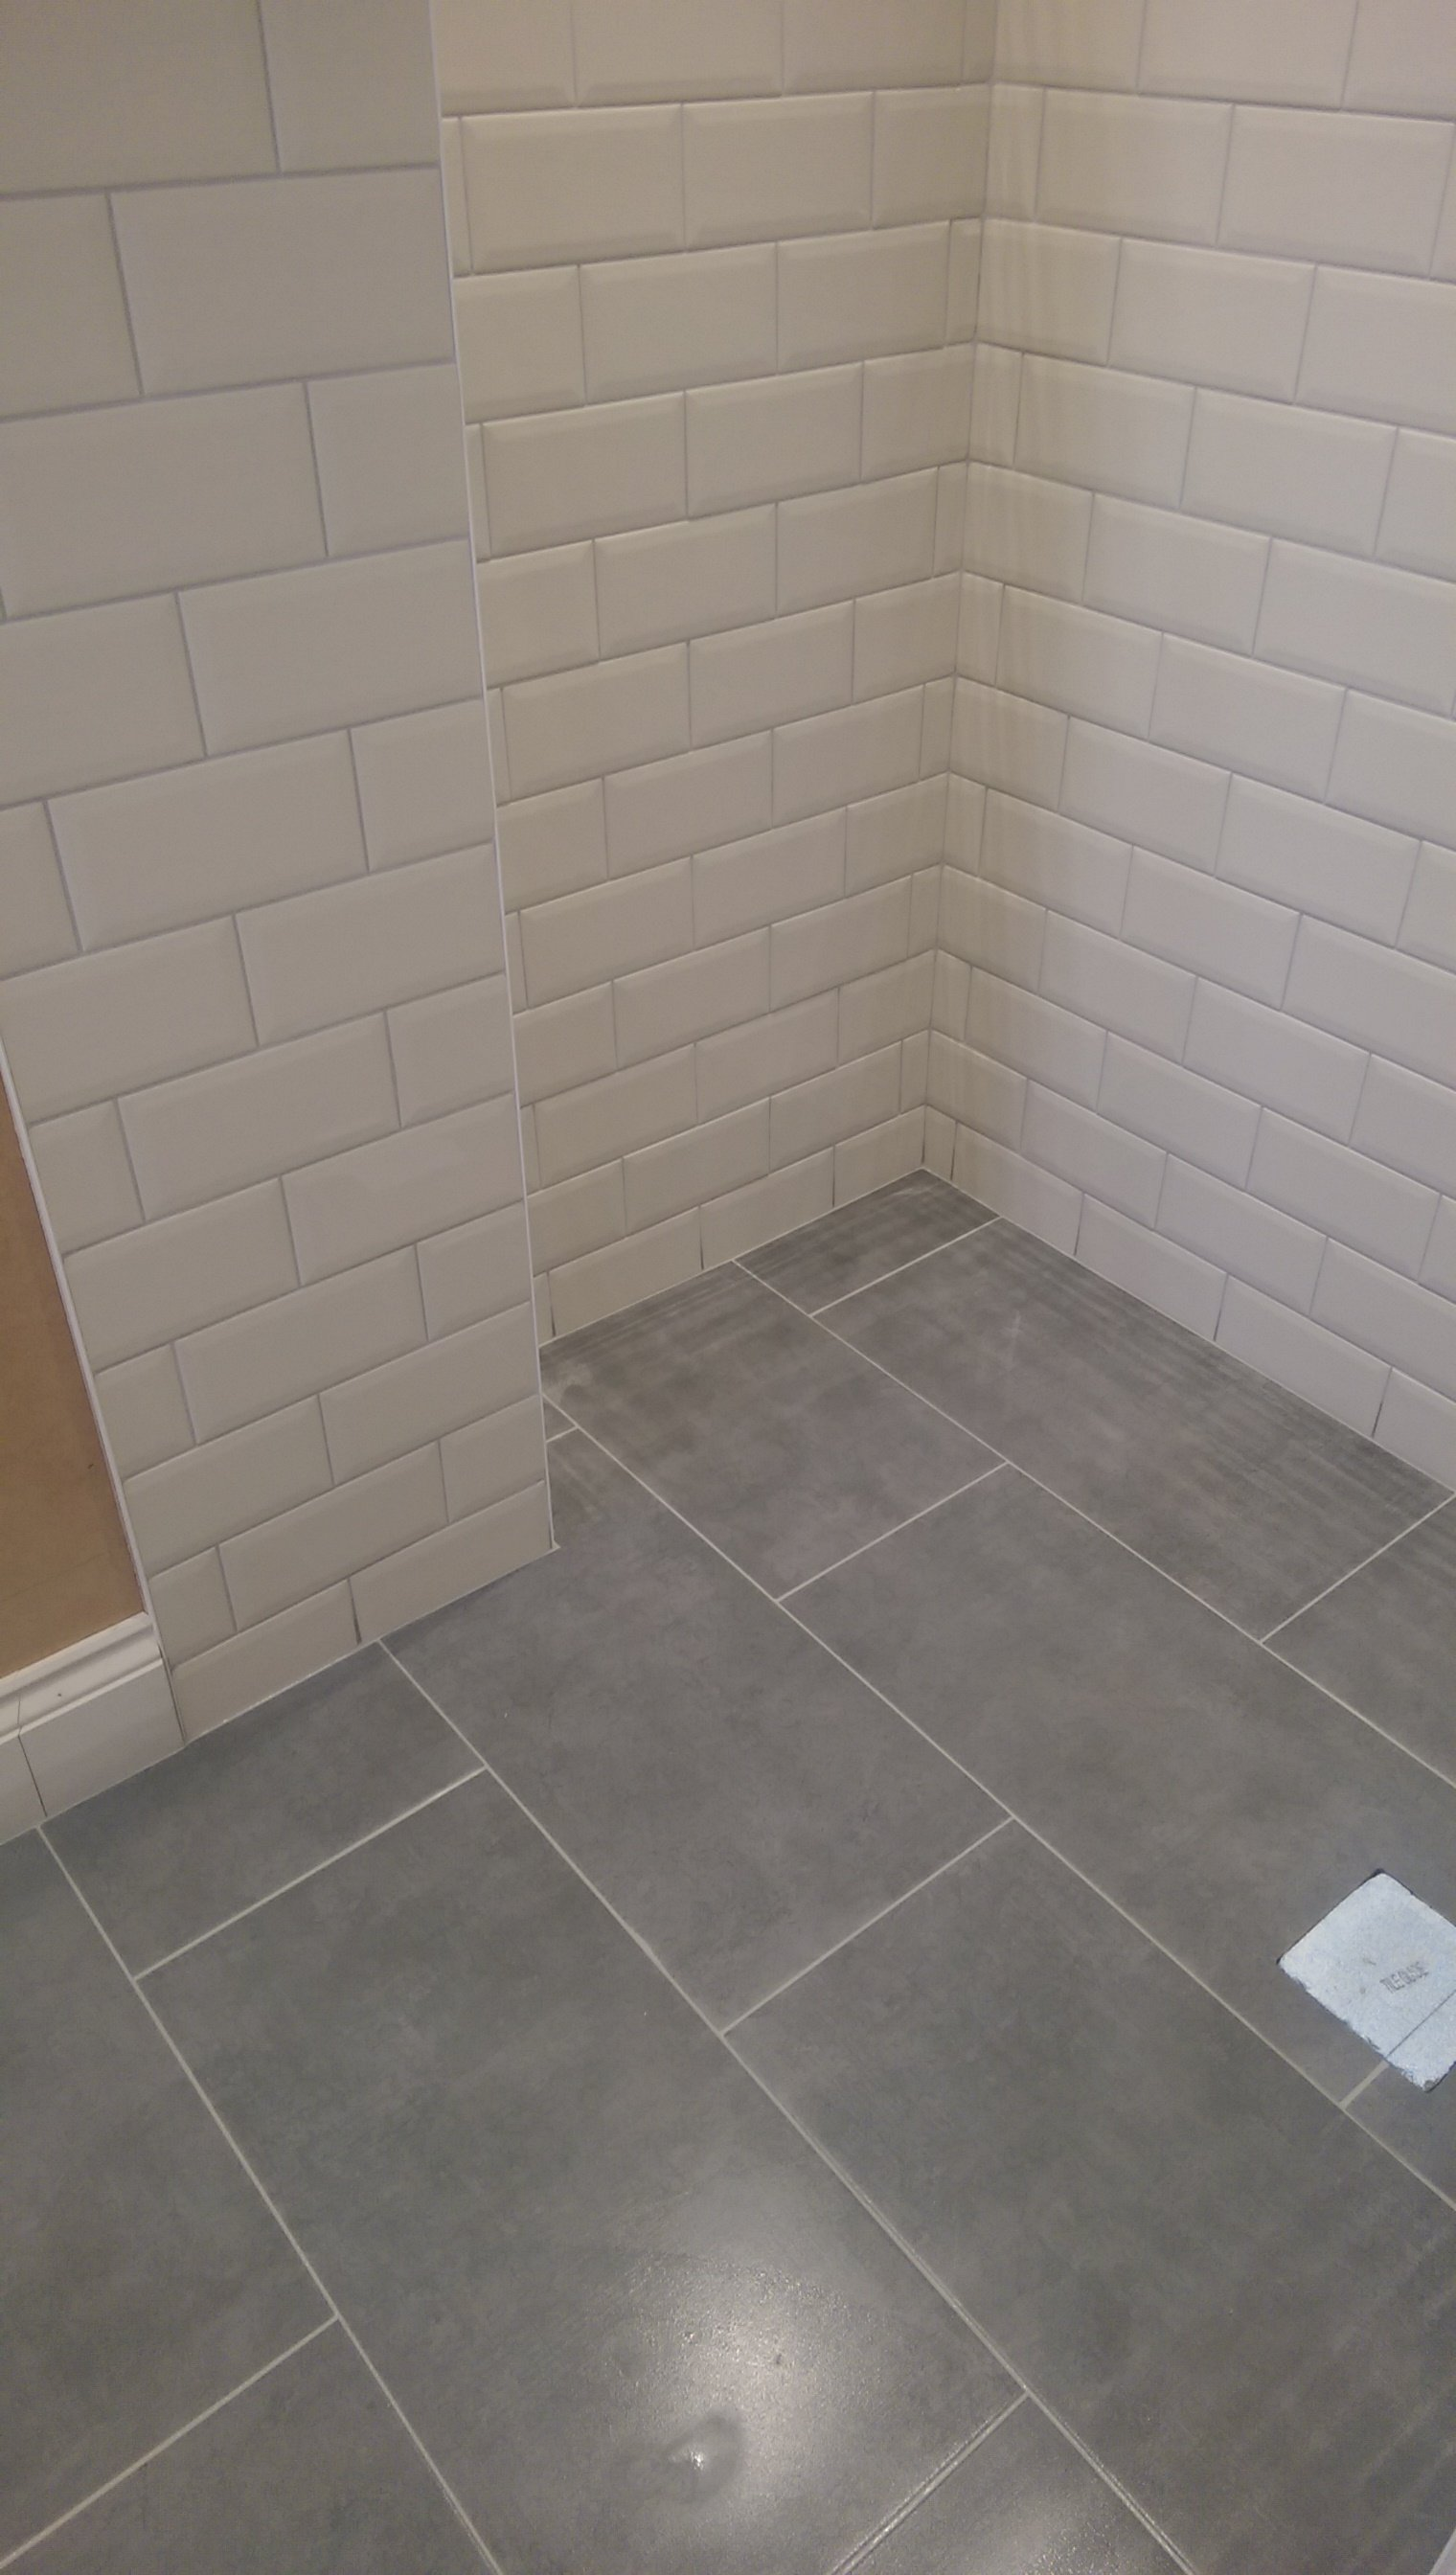 Gray floor tiles and white wall tiles in a new bathroom installation